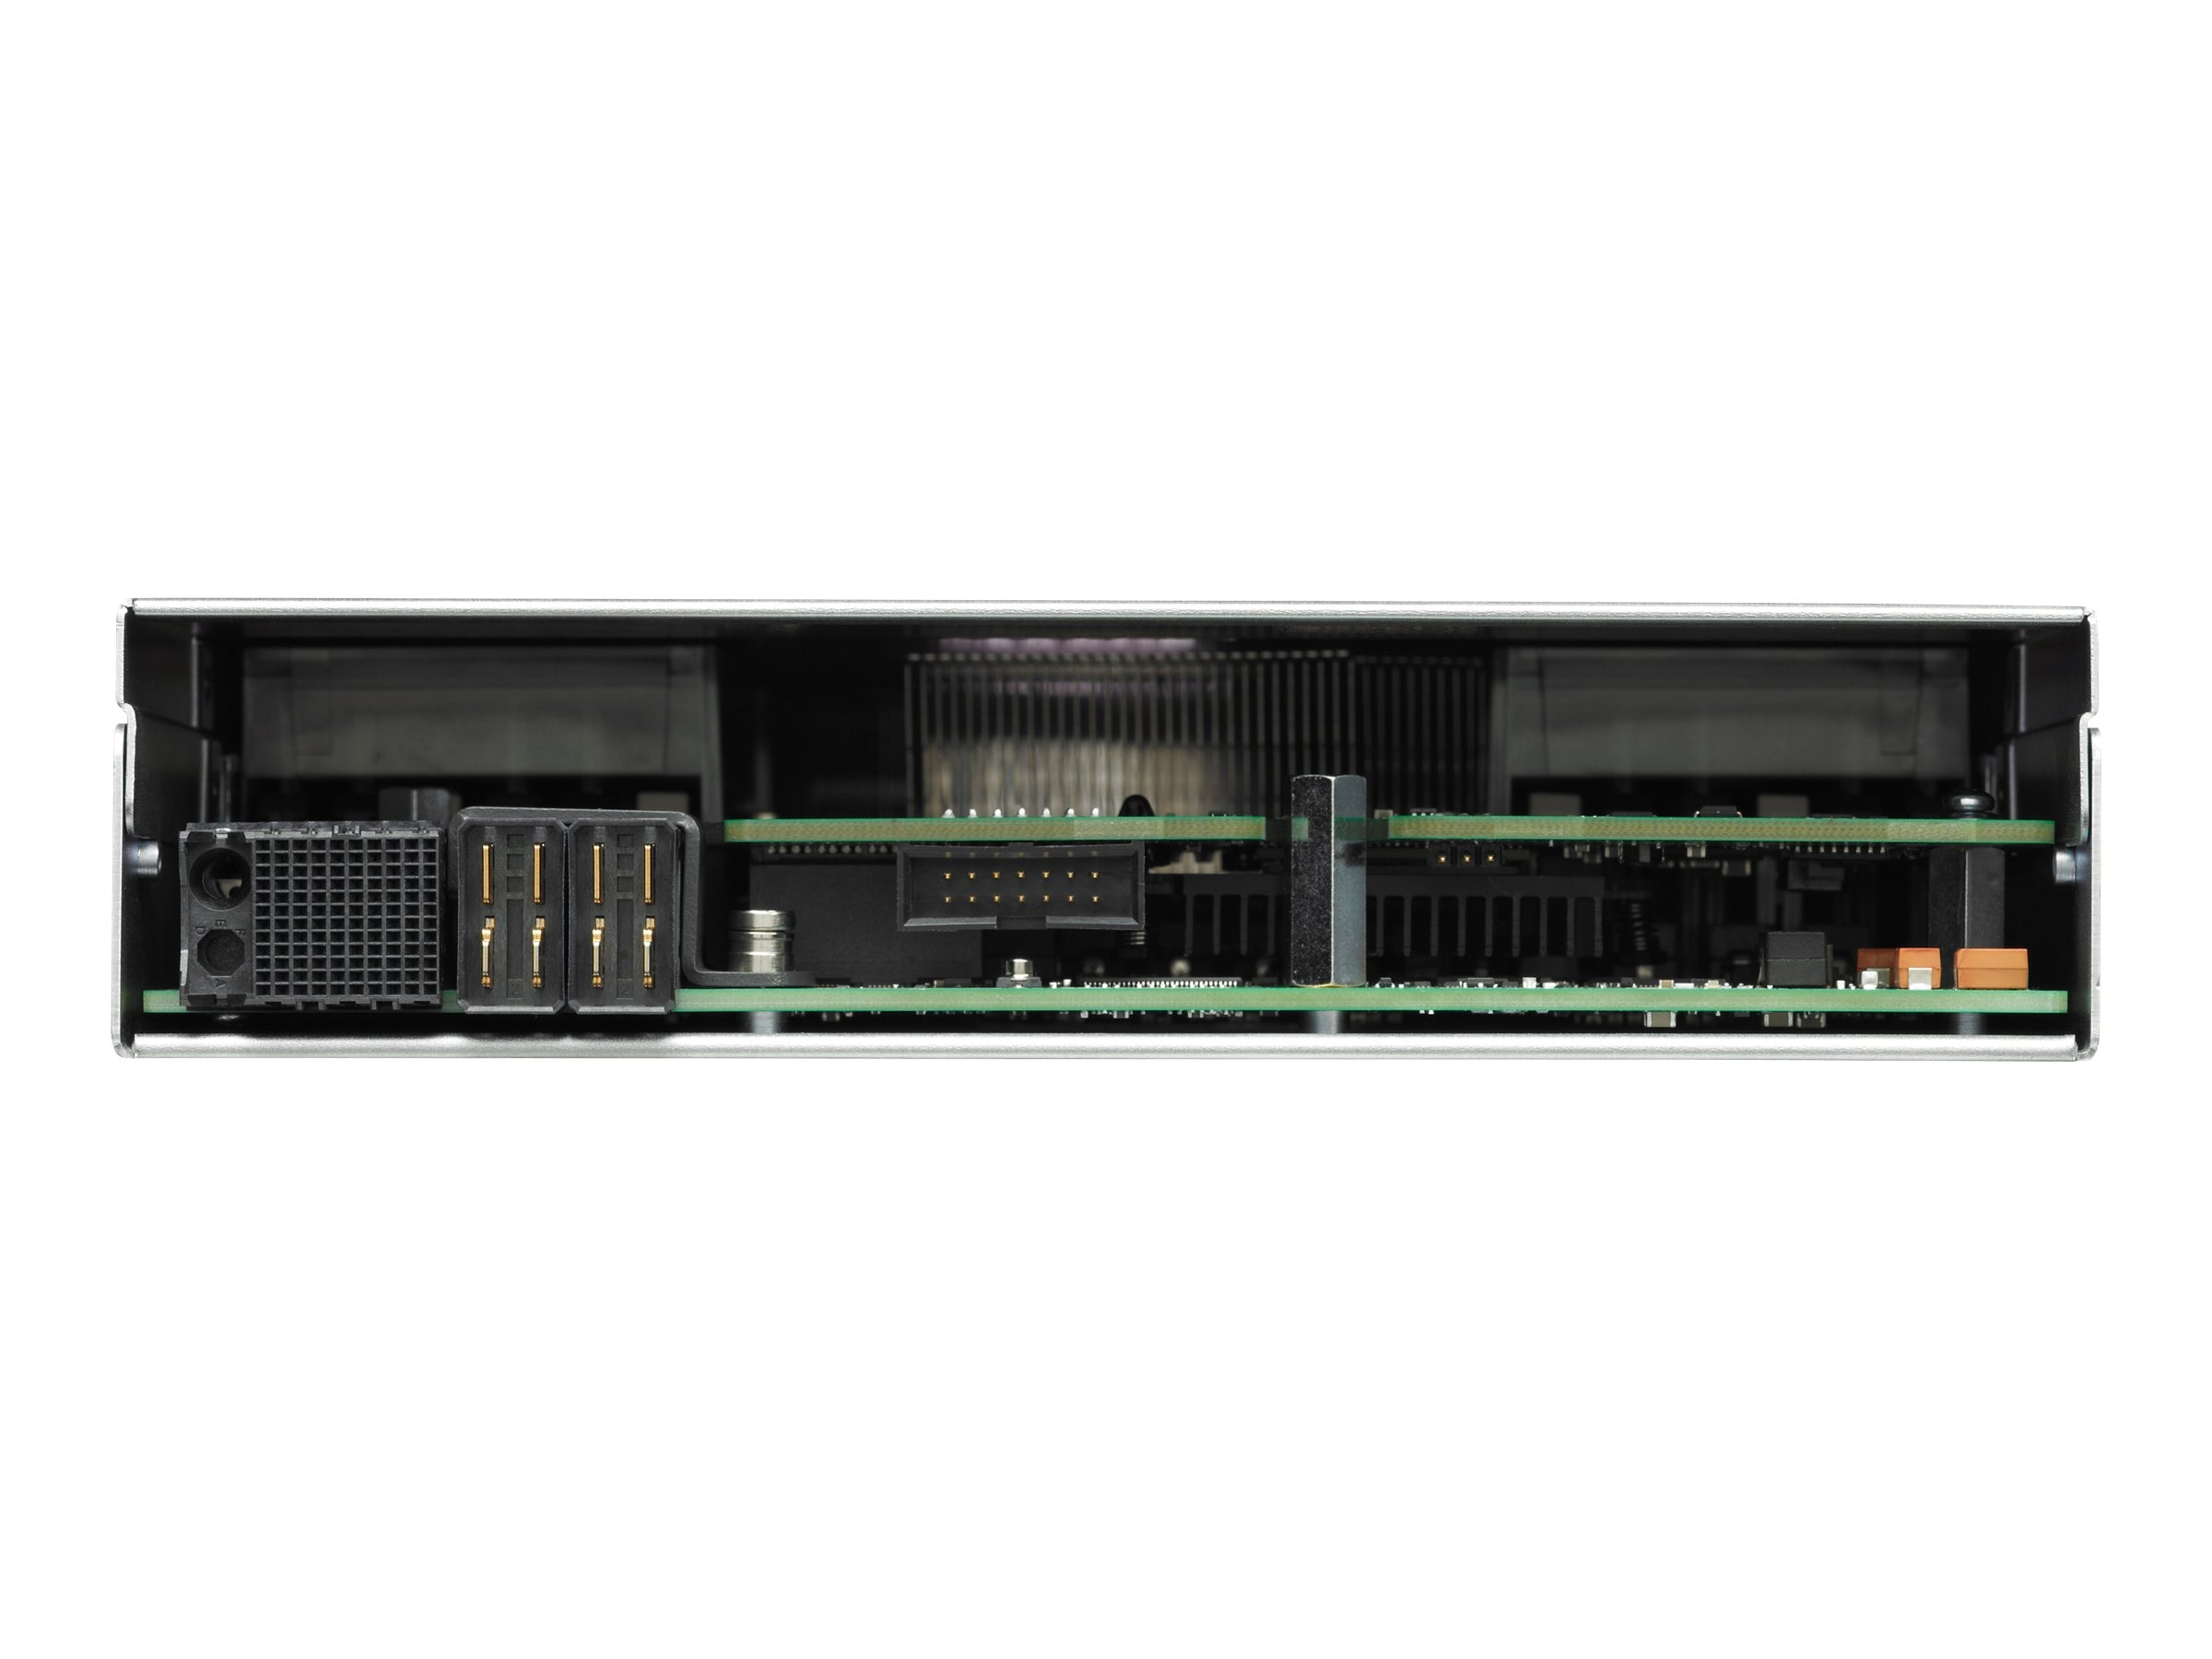 Cisco UCS B200 M3 Value SmartPlay 5108 Chassis (4x)Blades (2x)Xeon E5-2640 v2 2.0GHz 128GB 2x2.5Bays 40Gb, UCS-SP7-B200-V